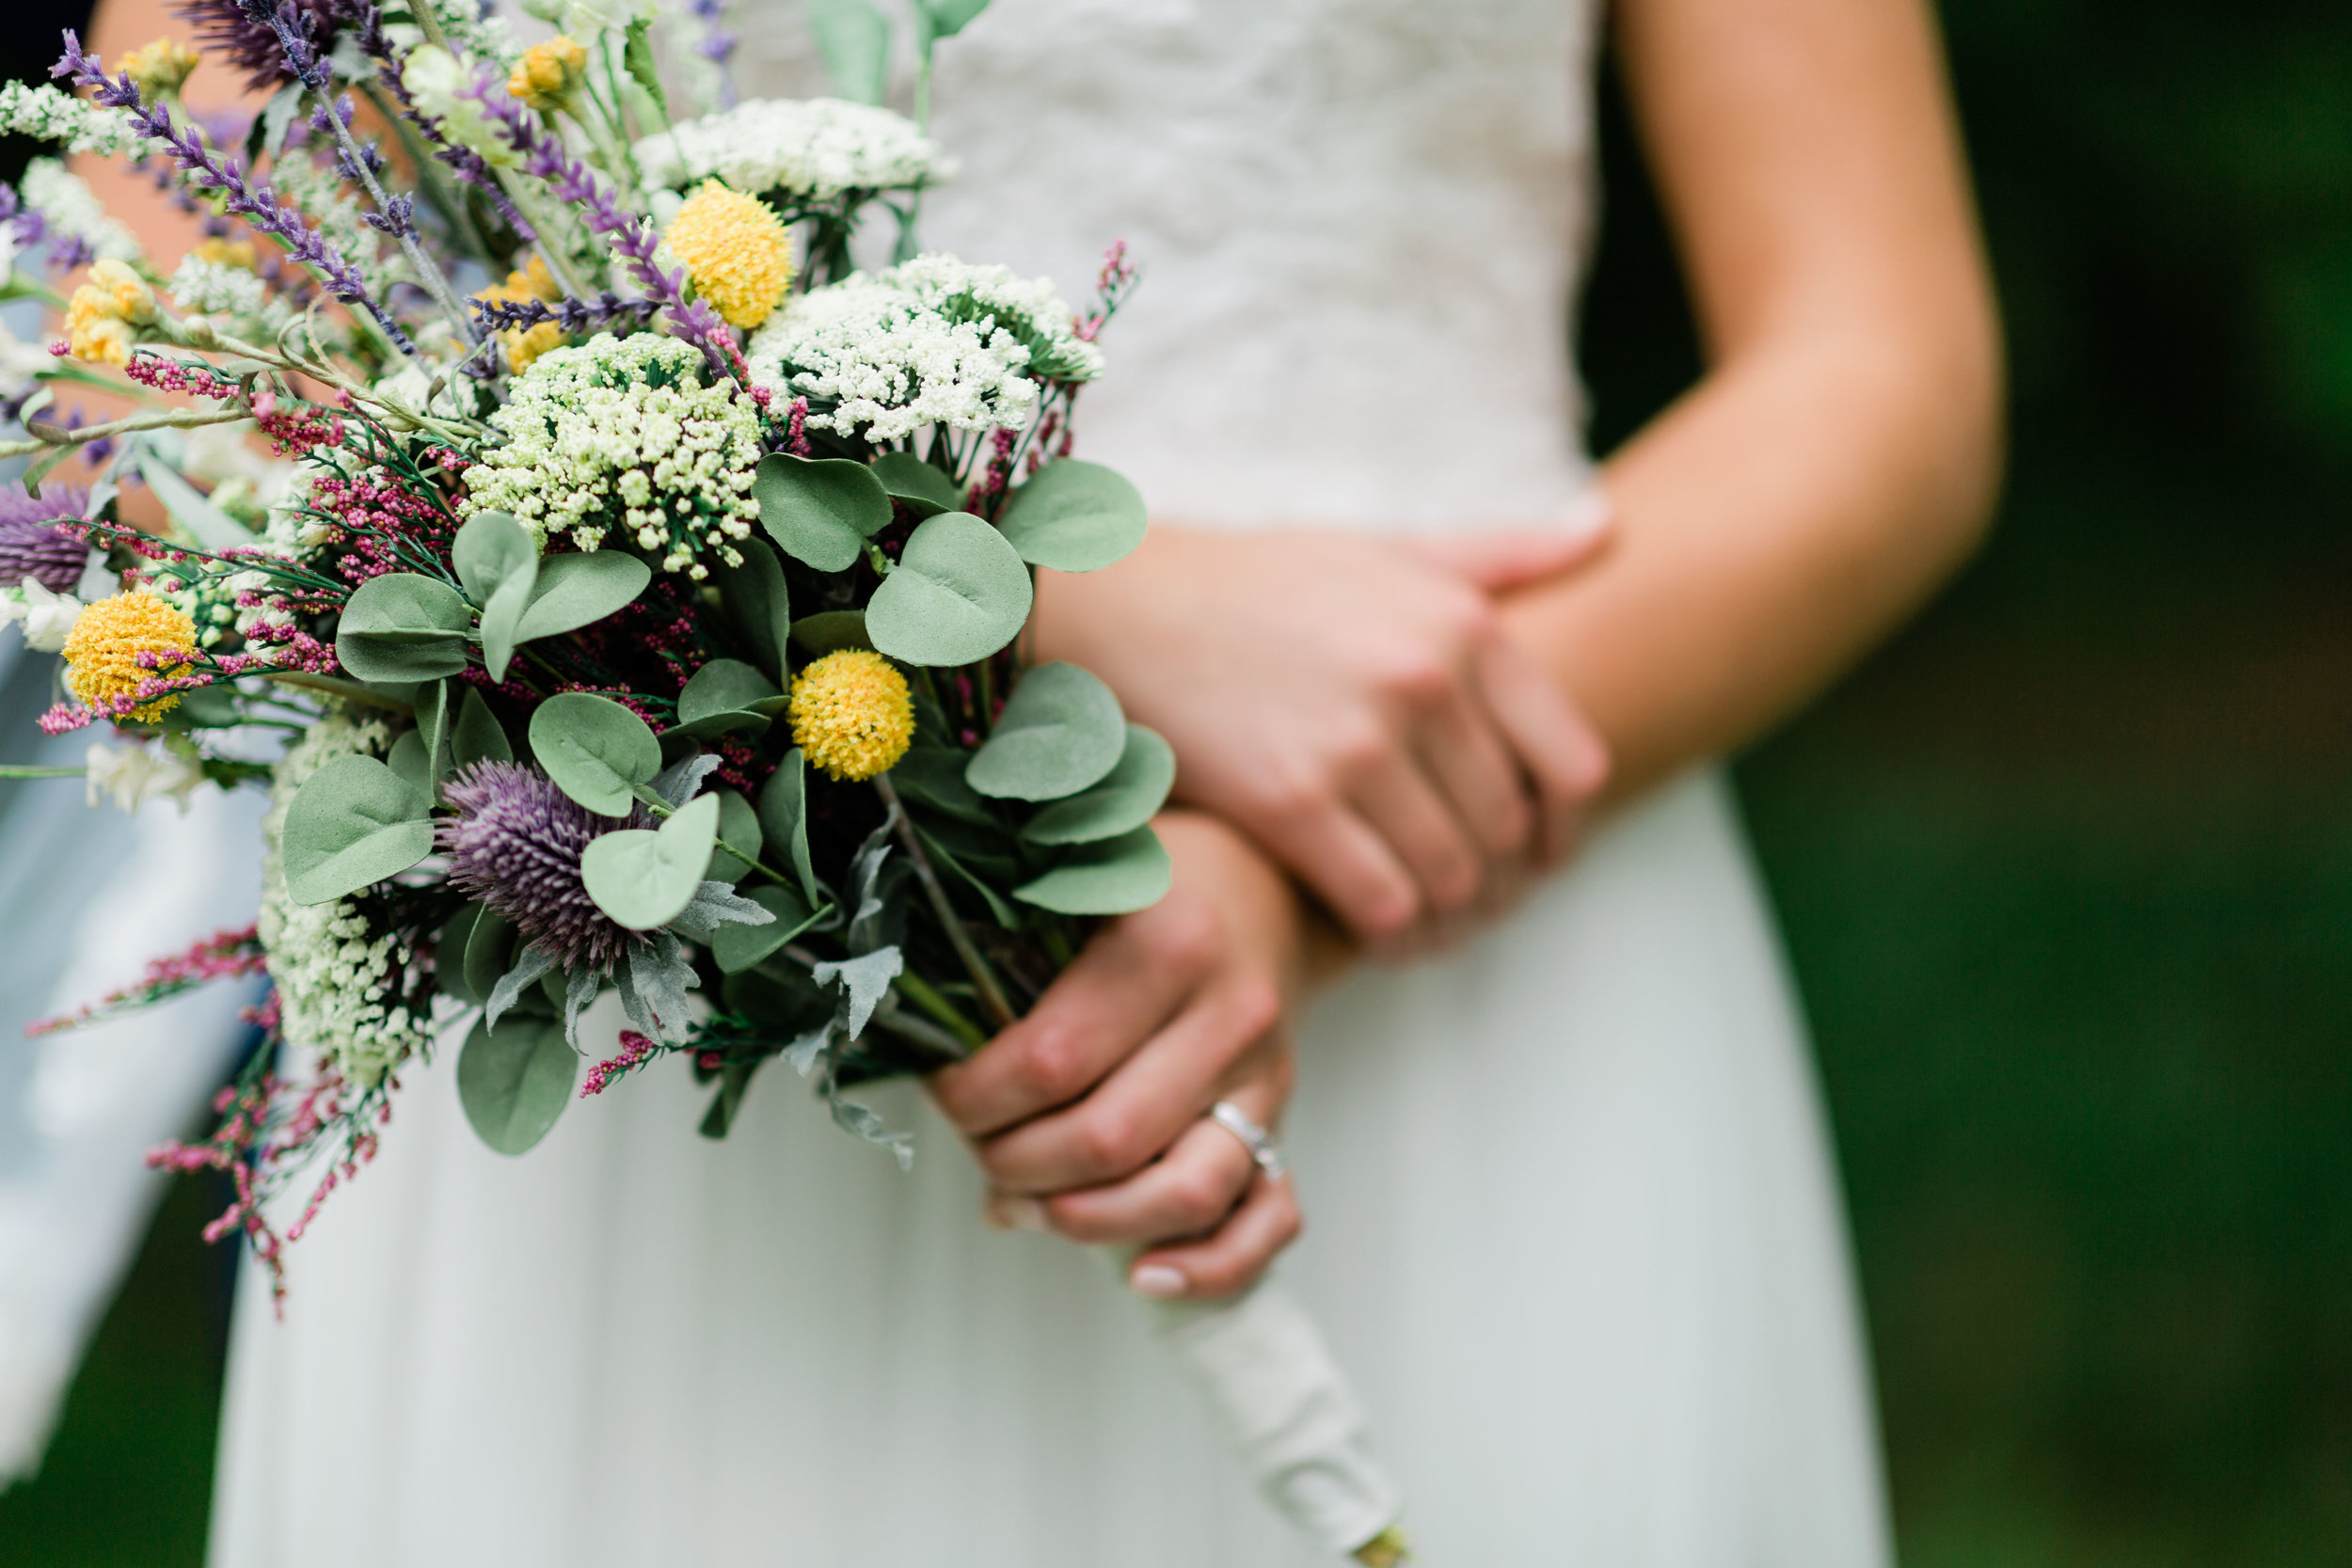 Weddings - $1,200-$6,000Includes an heirloom album.3-8+ hours of coverage.